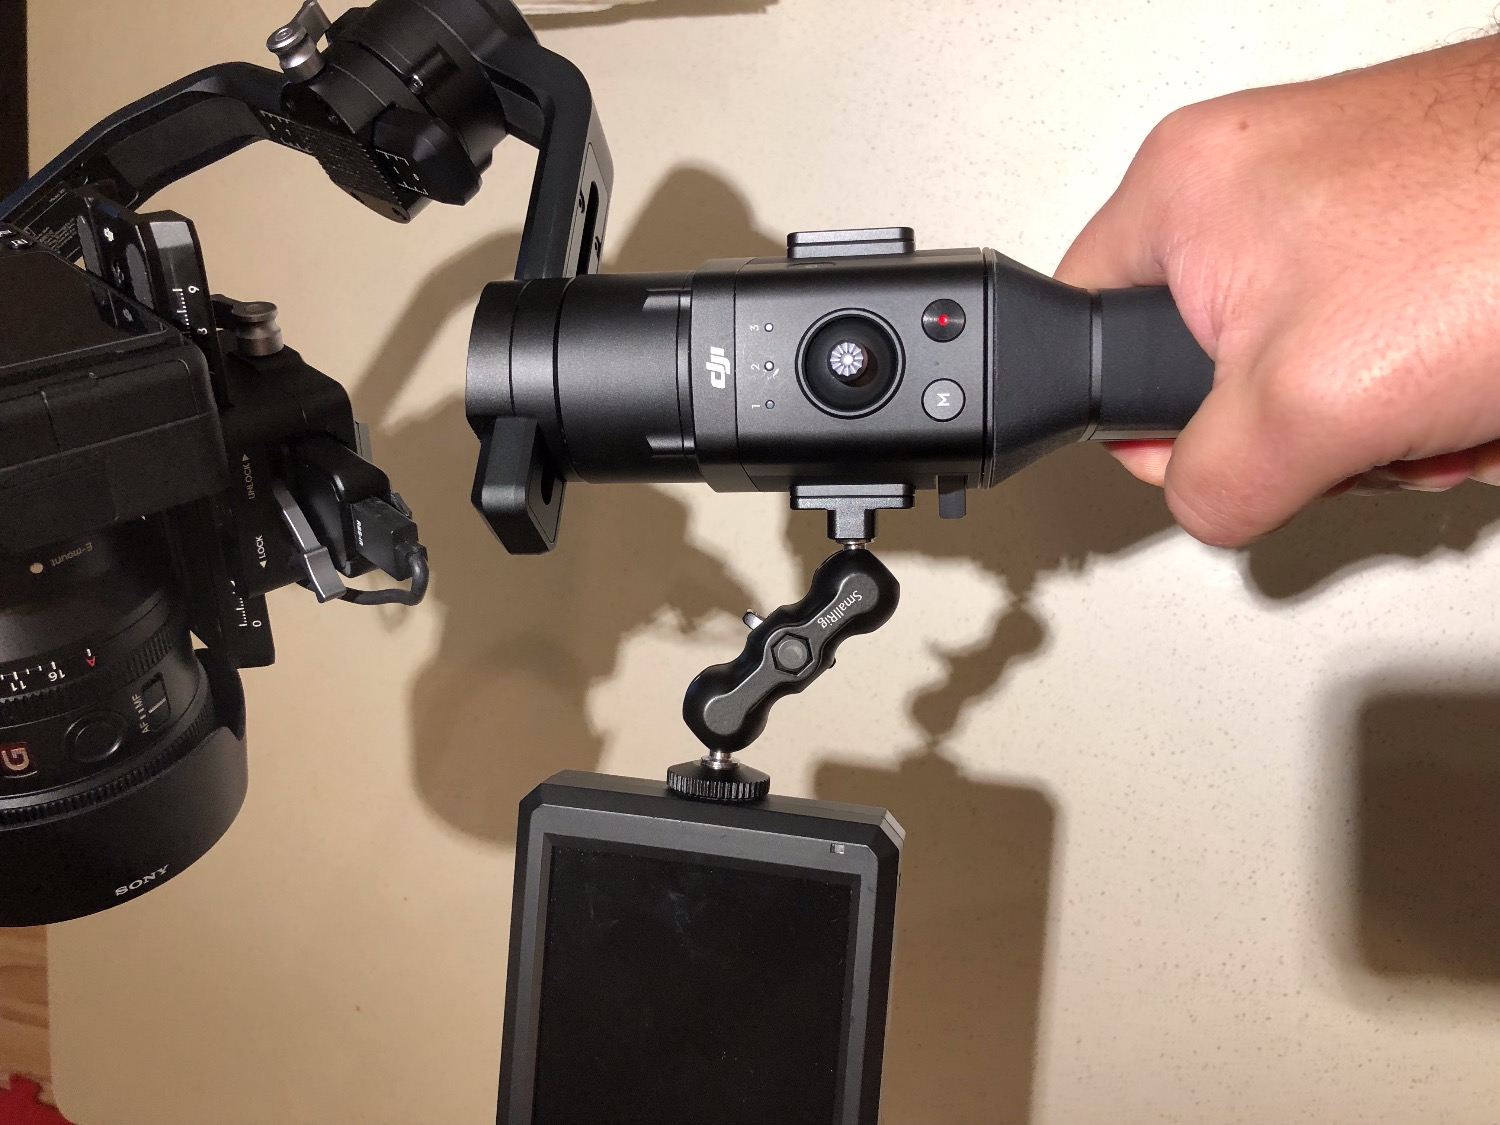 Mounting External Monitor on Ronin S | DJI FORUM